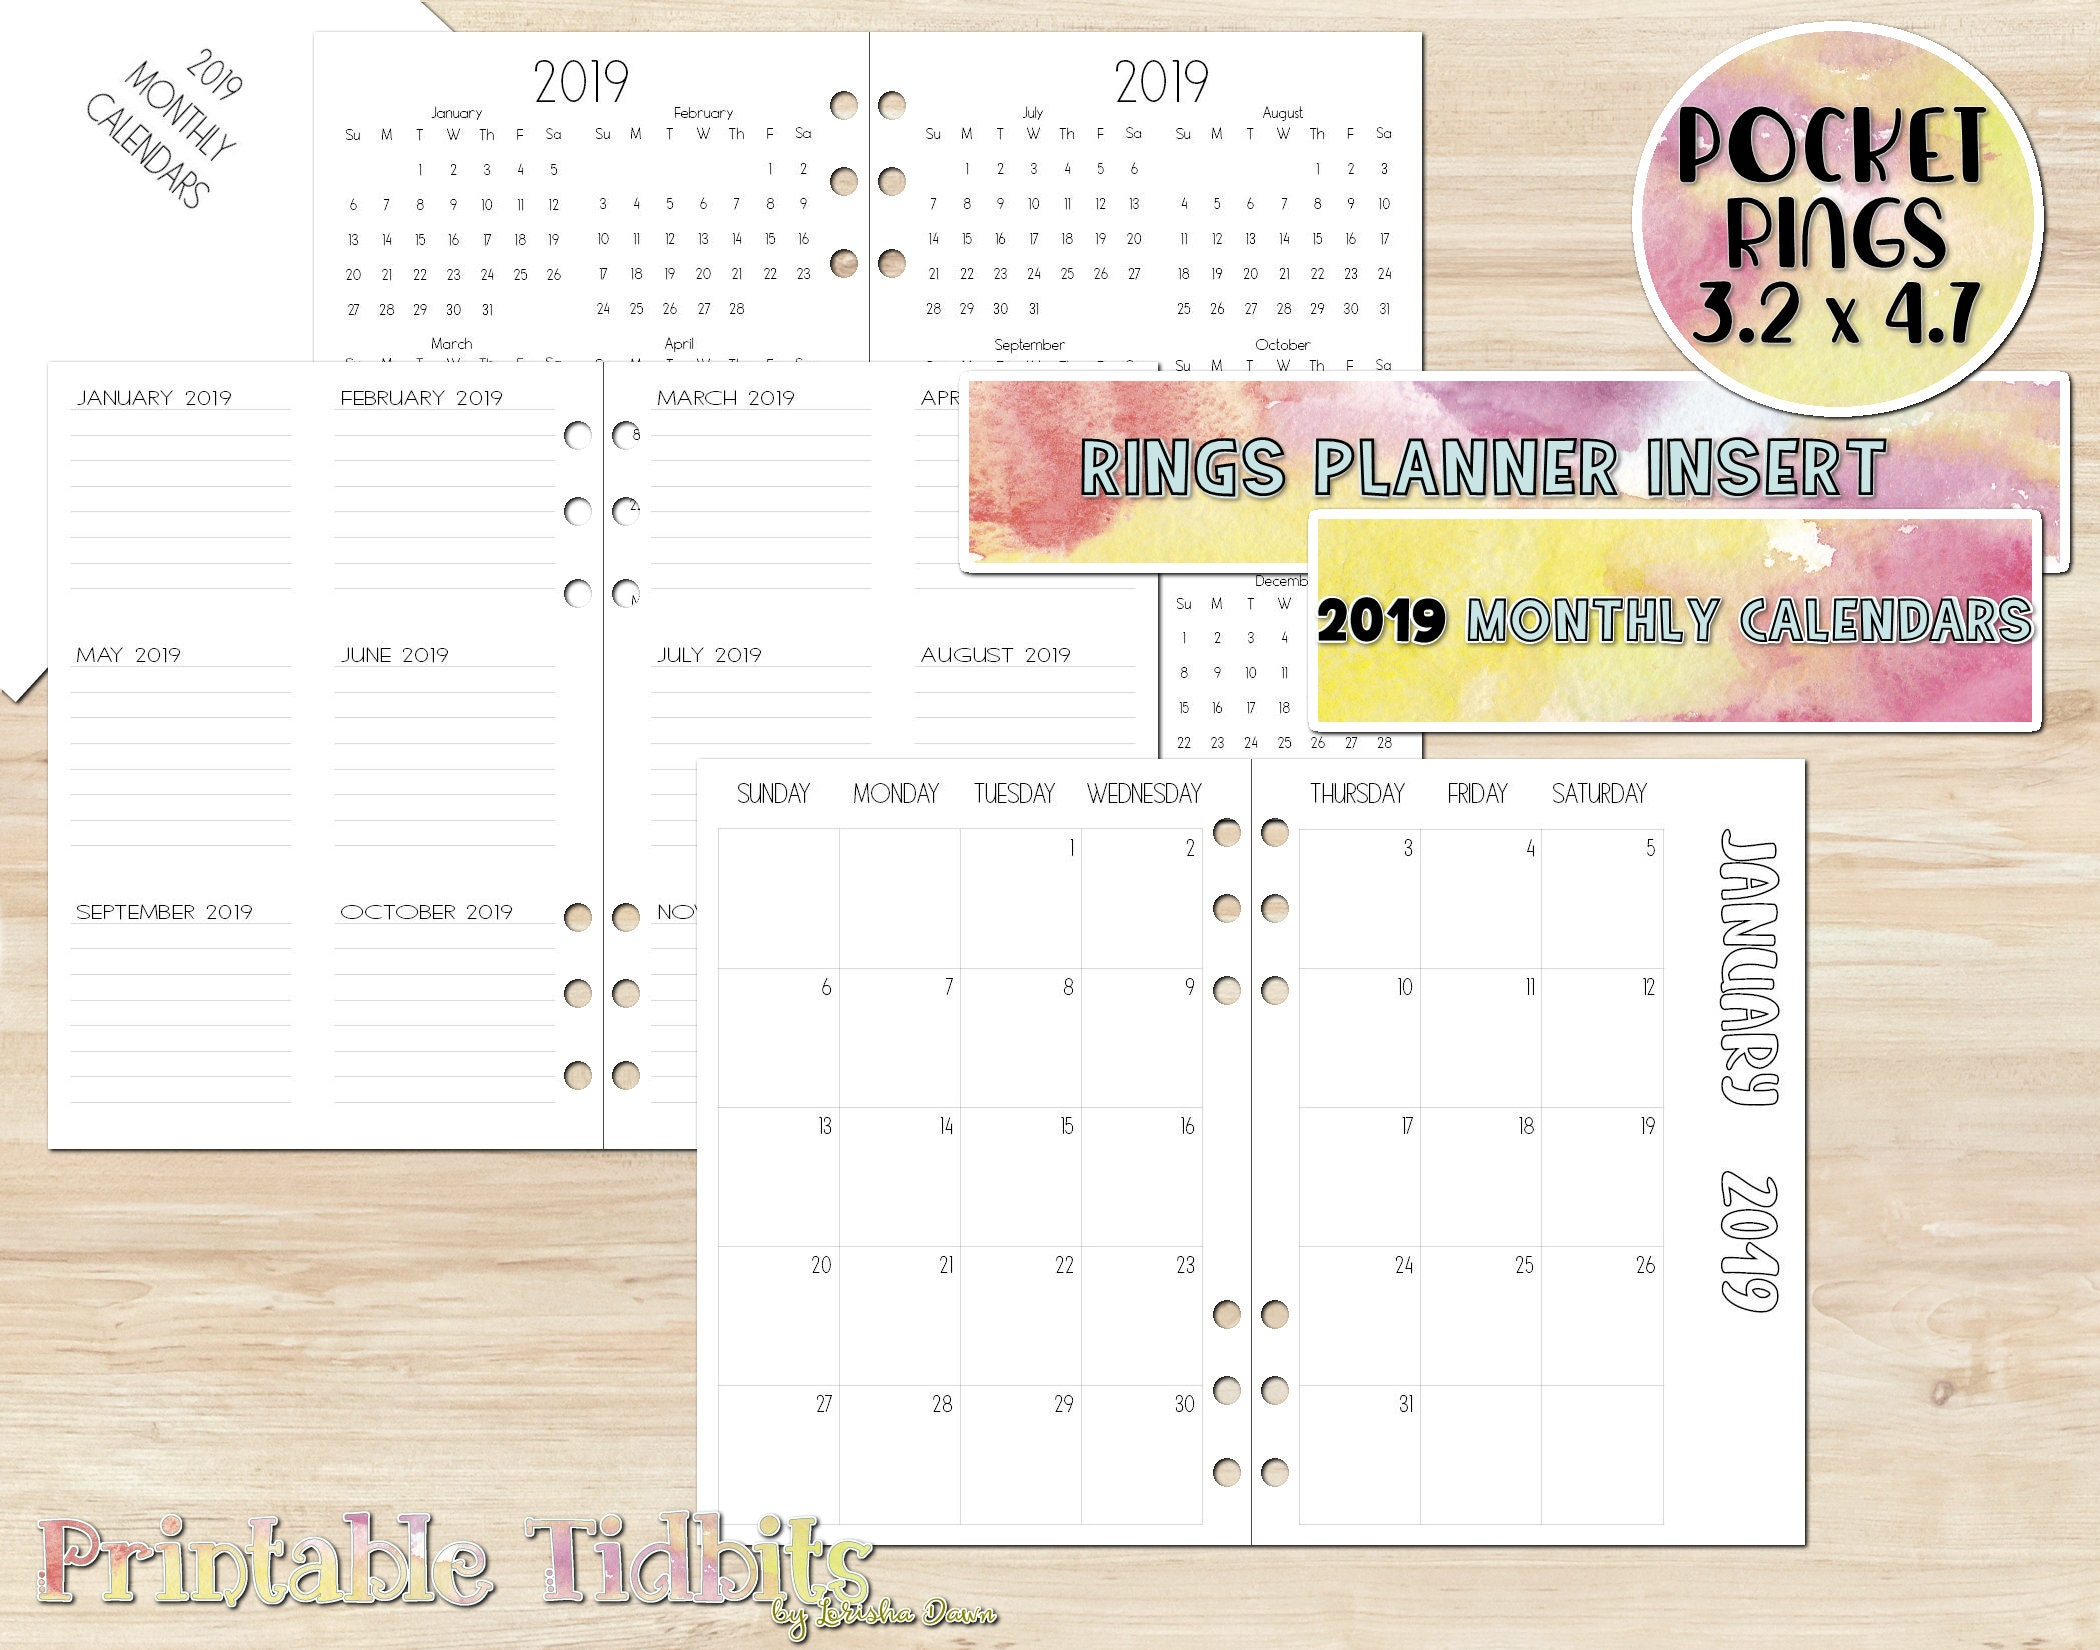 picture relating to Printable Pocket Calendar named Pocket 2019 Planner Increase - 2019 Calendar - Printable Pocket Planner Incorporate